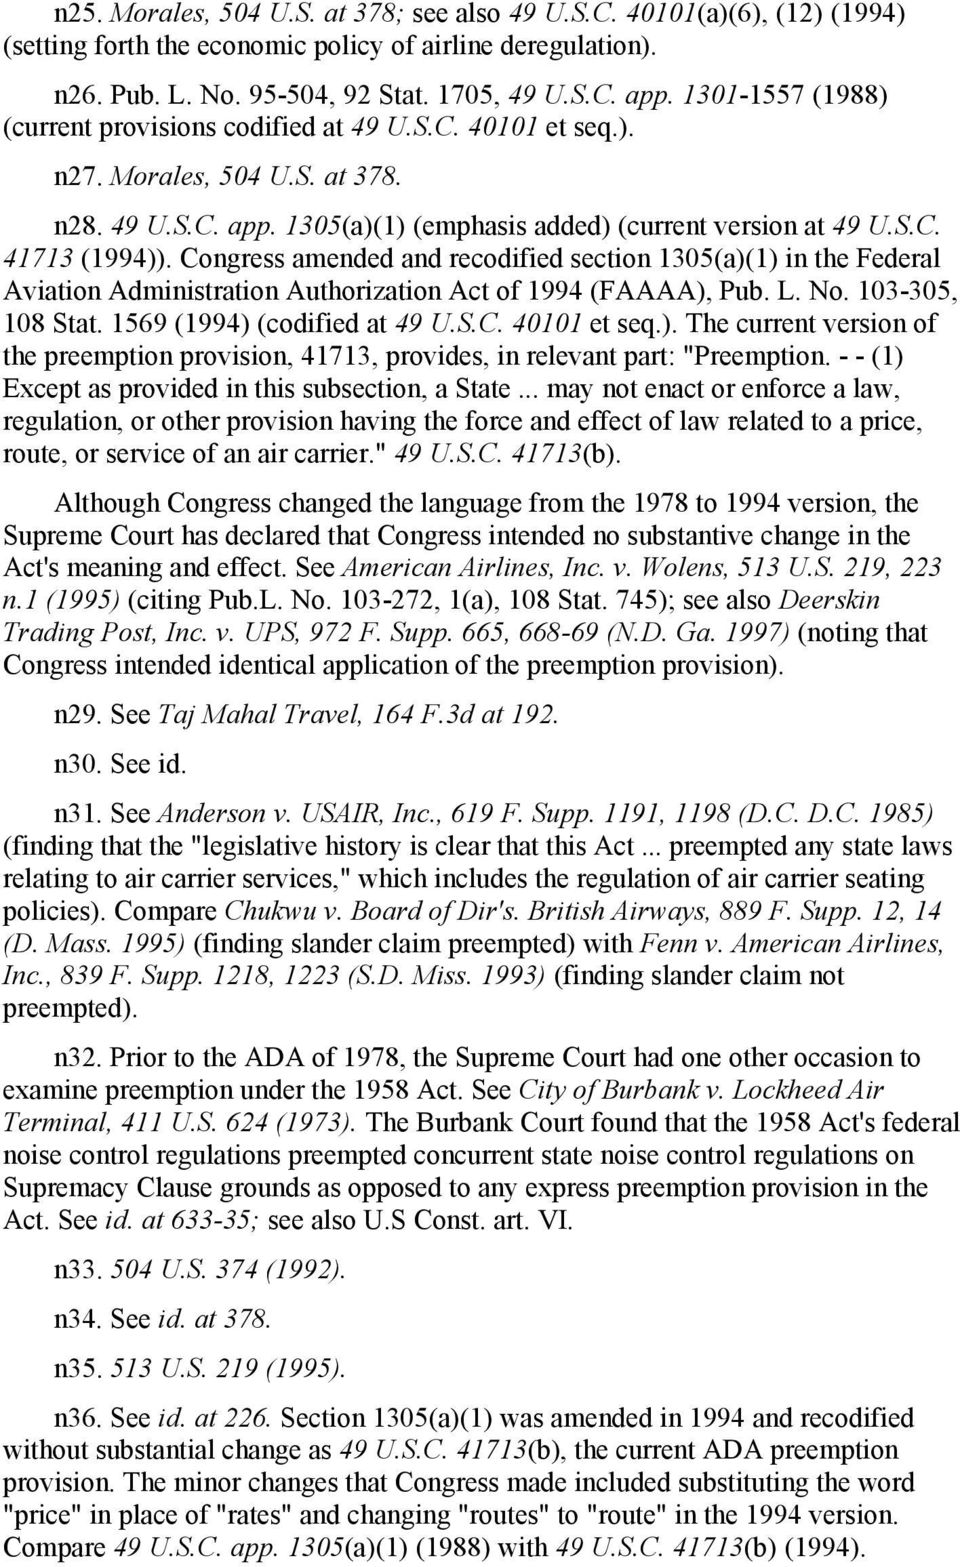 Congress amended and recodified section 1305(a)(1) in the Federal Aviation Administration Authorization Act of 1994 (FAAAA), Pub. L. No. 103-305, 108 Stat. 1569 (1994) (codified at 49 U.S.C. 40101 et seq.